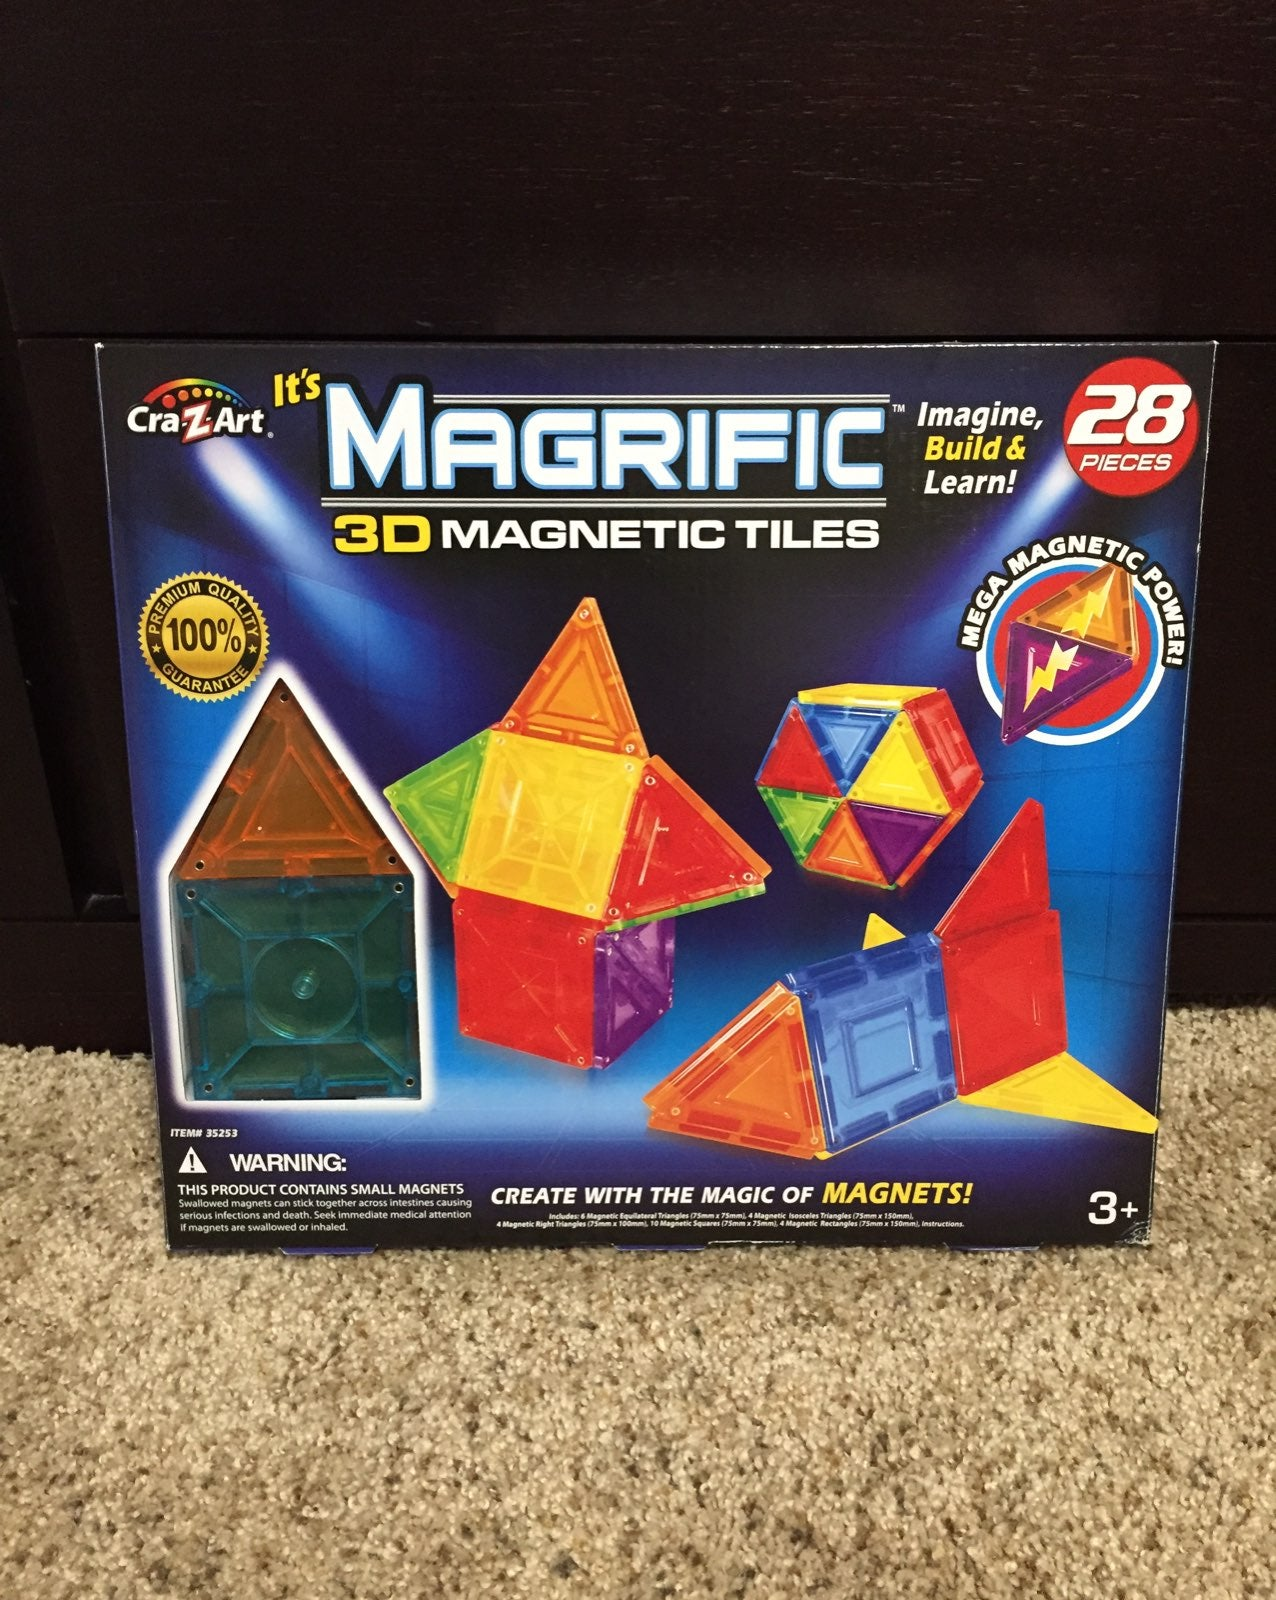 MAGRIFIC 3D Magnetic Tiles